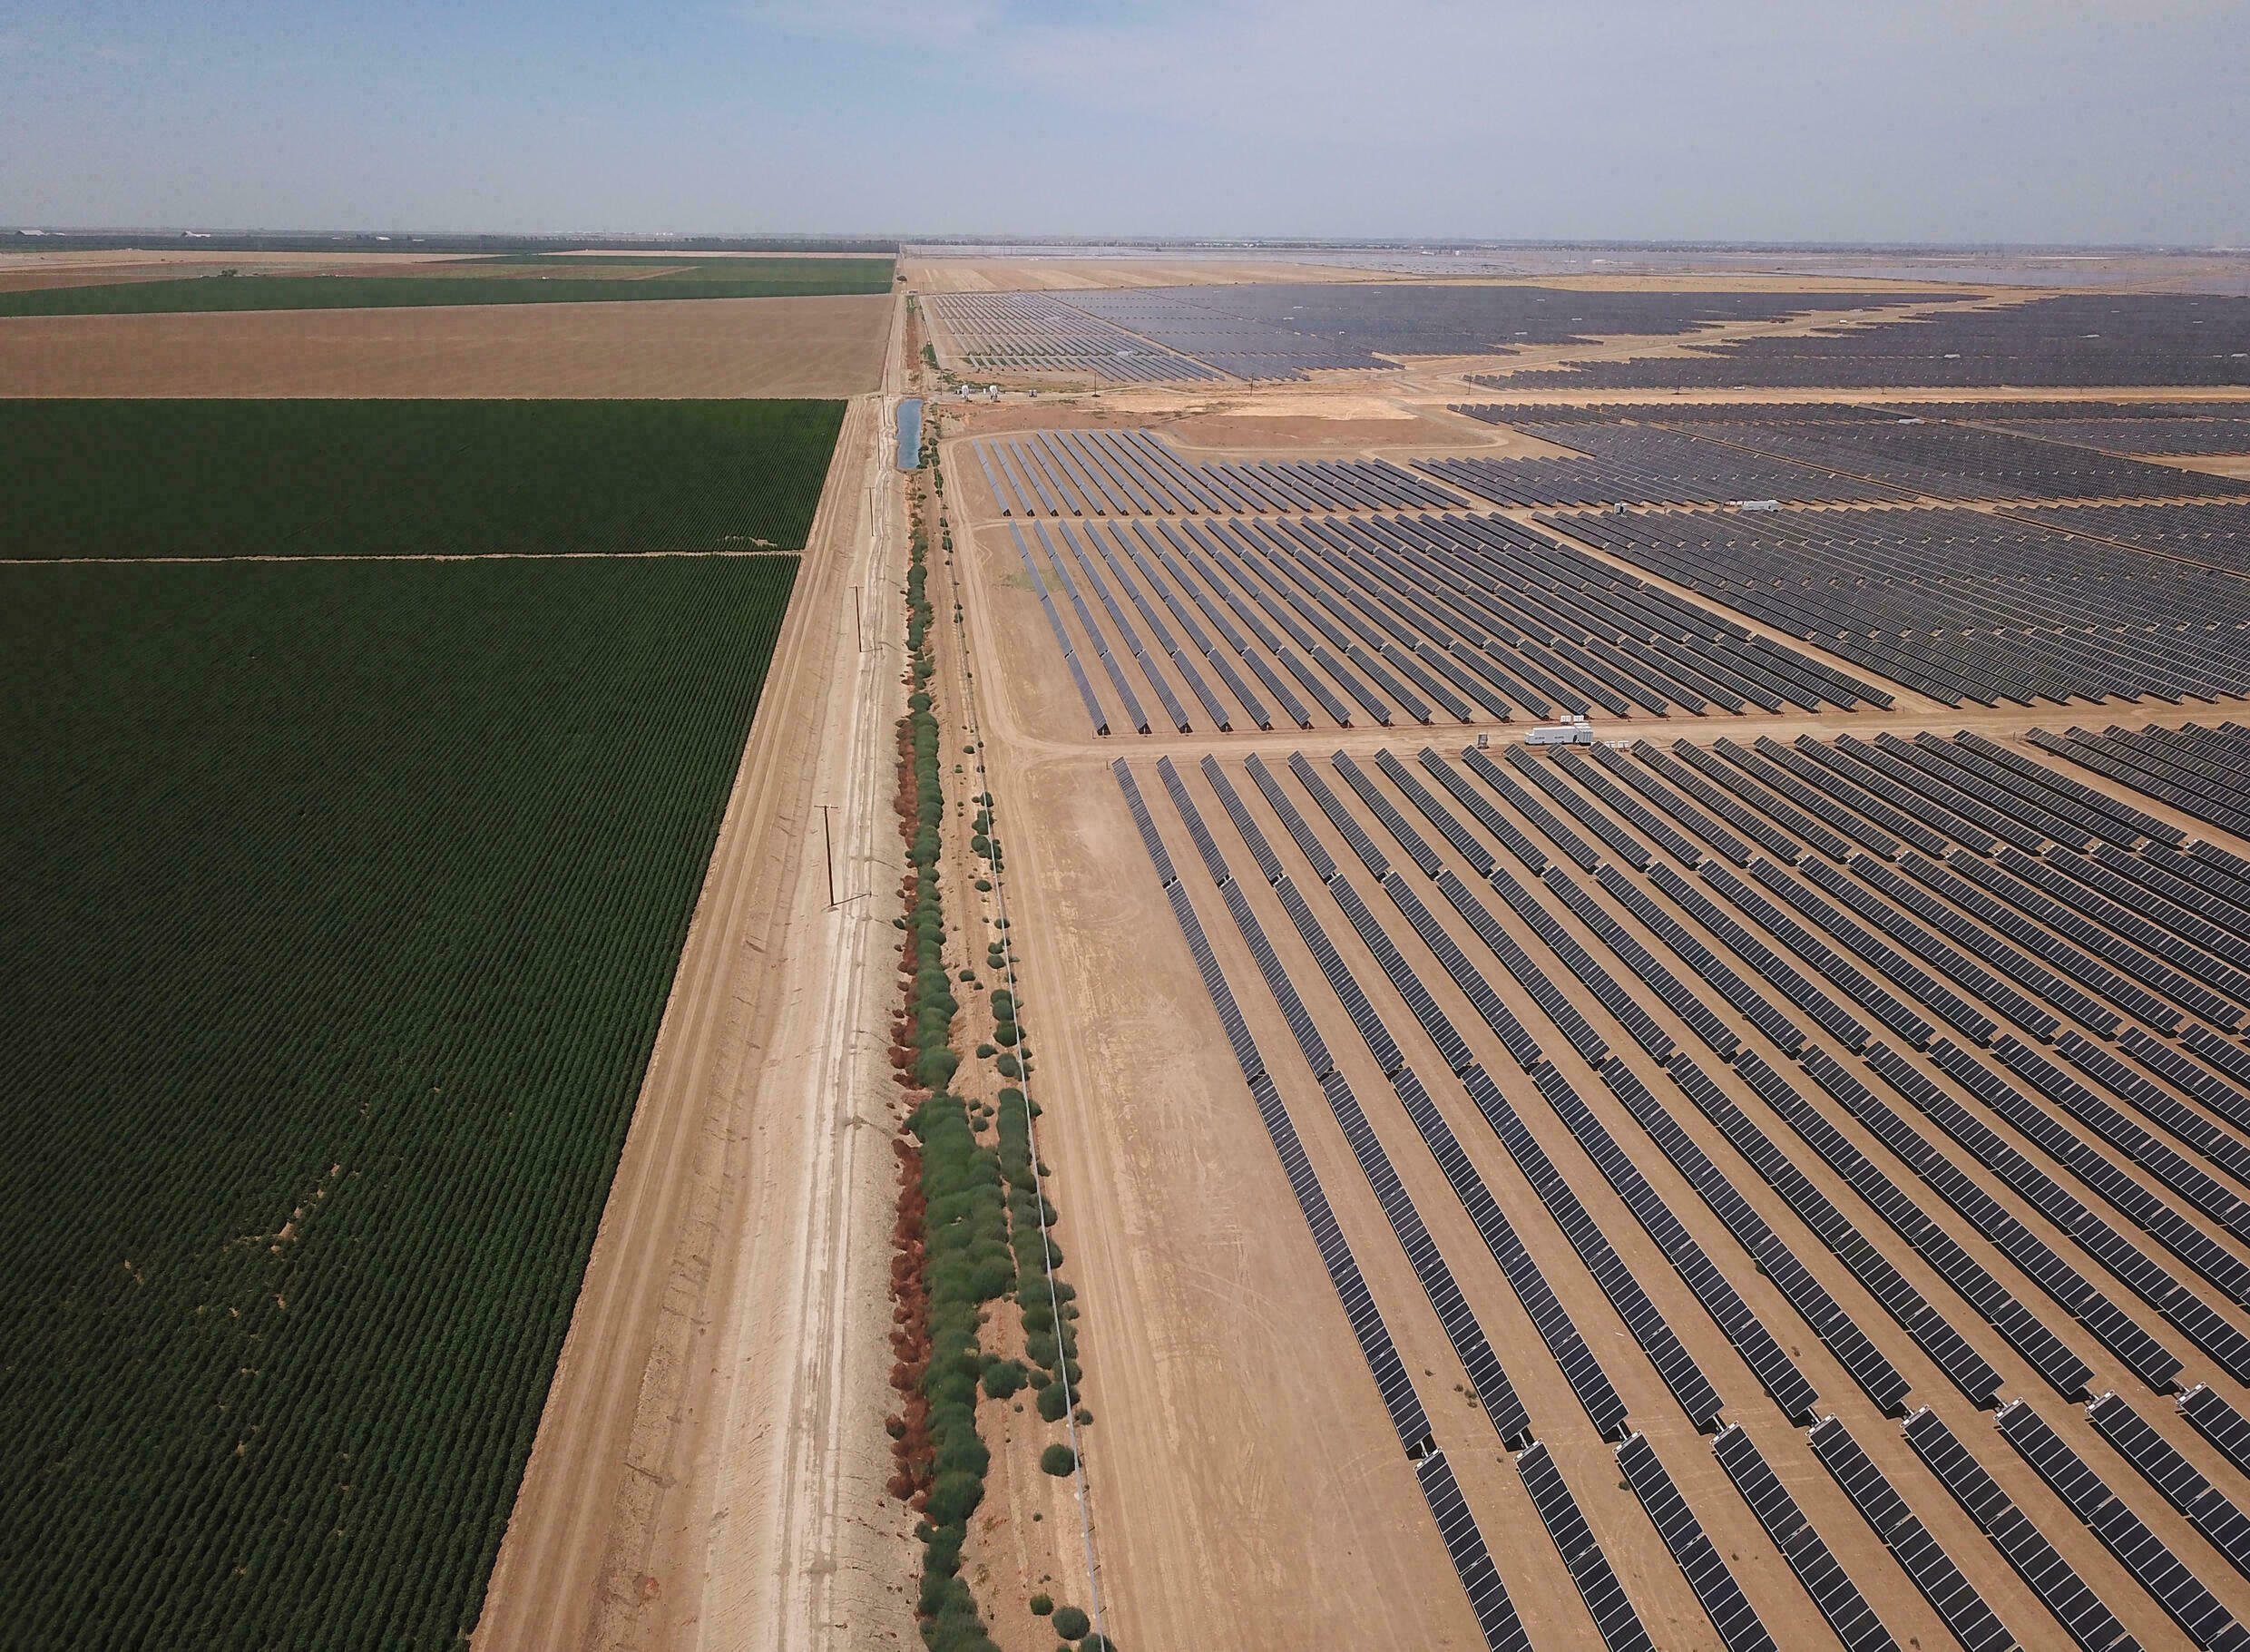 Endless rows of solar panels in what was once a farmfield in California's drought-stricken Central Valley